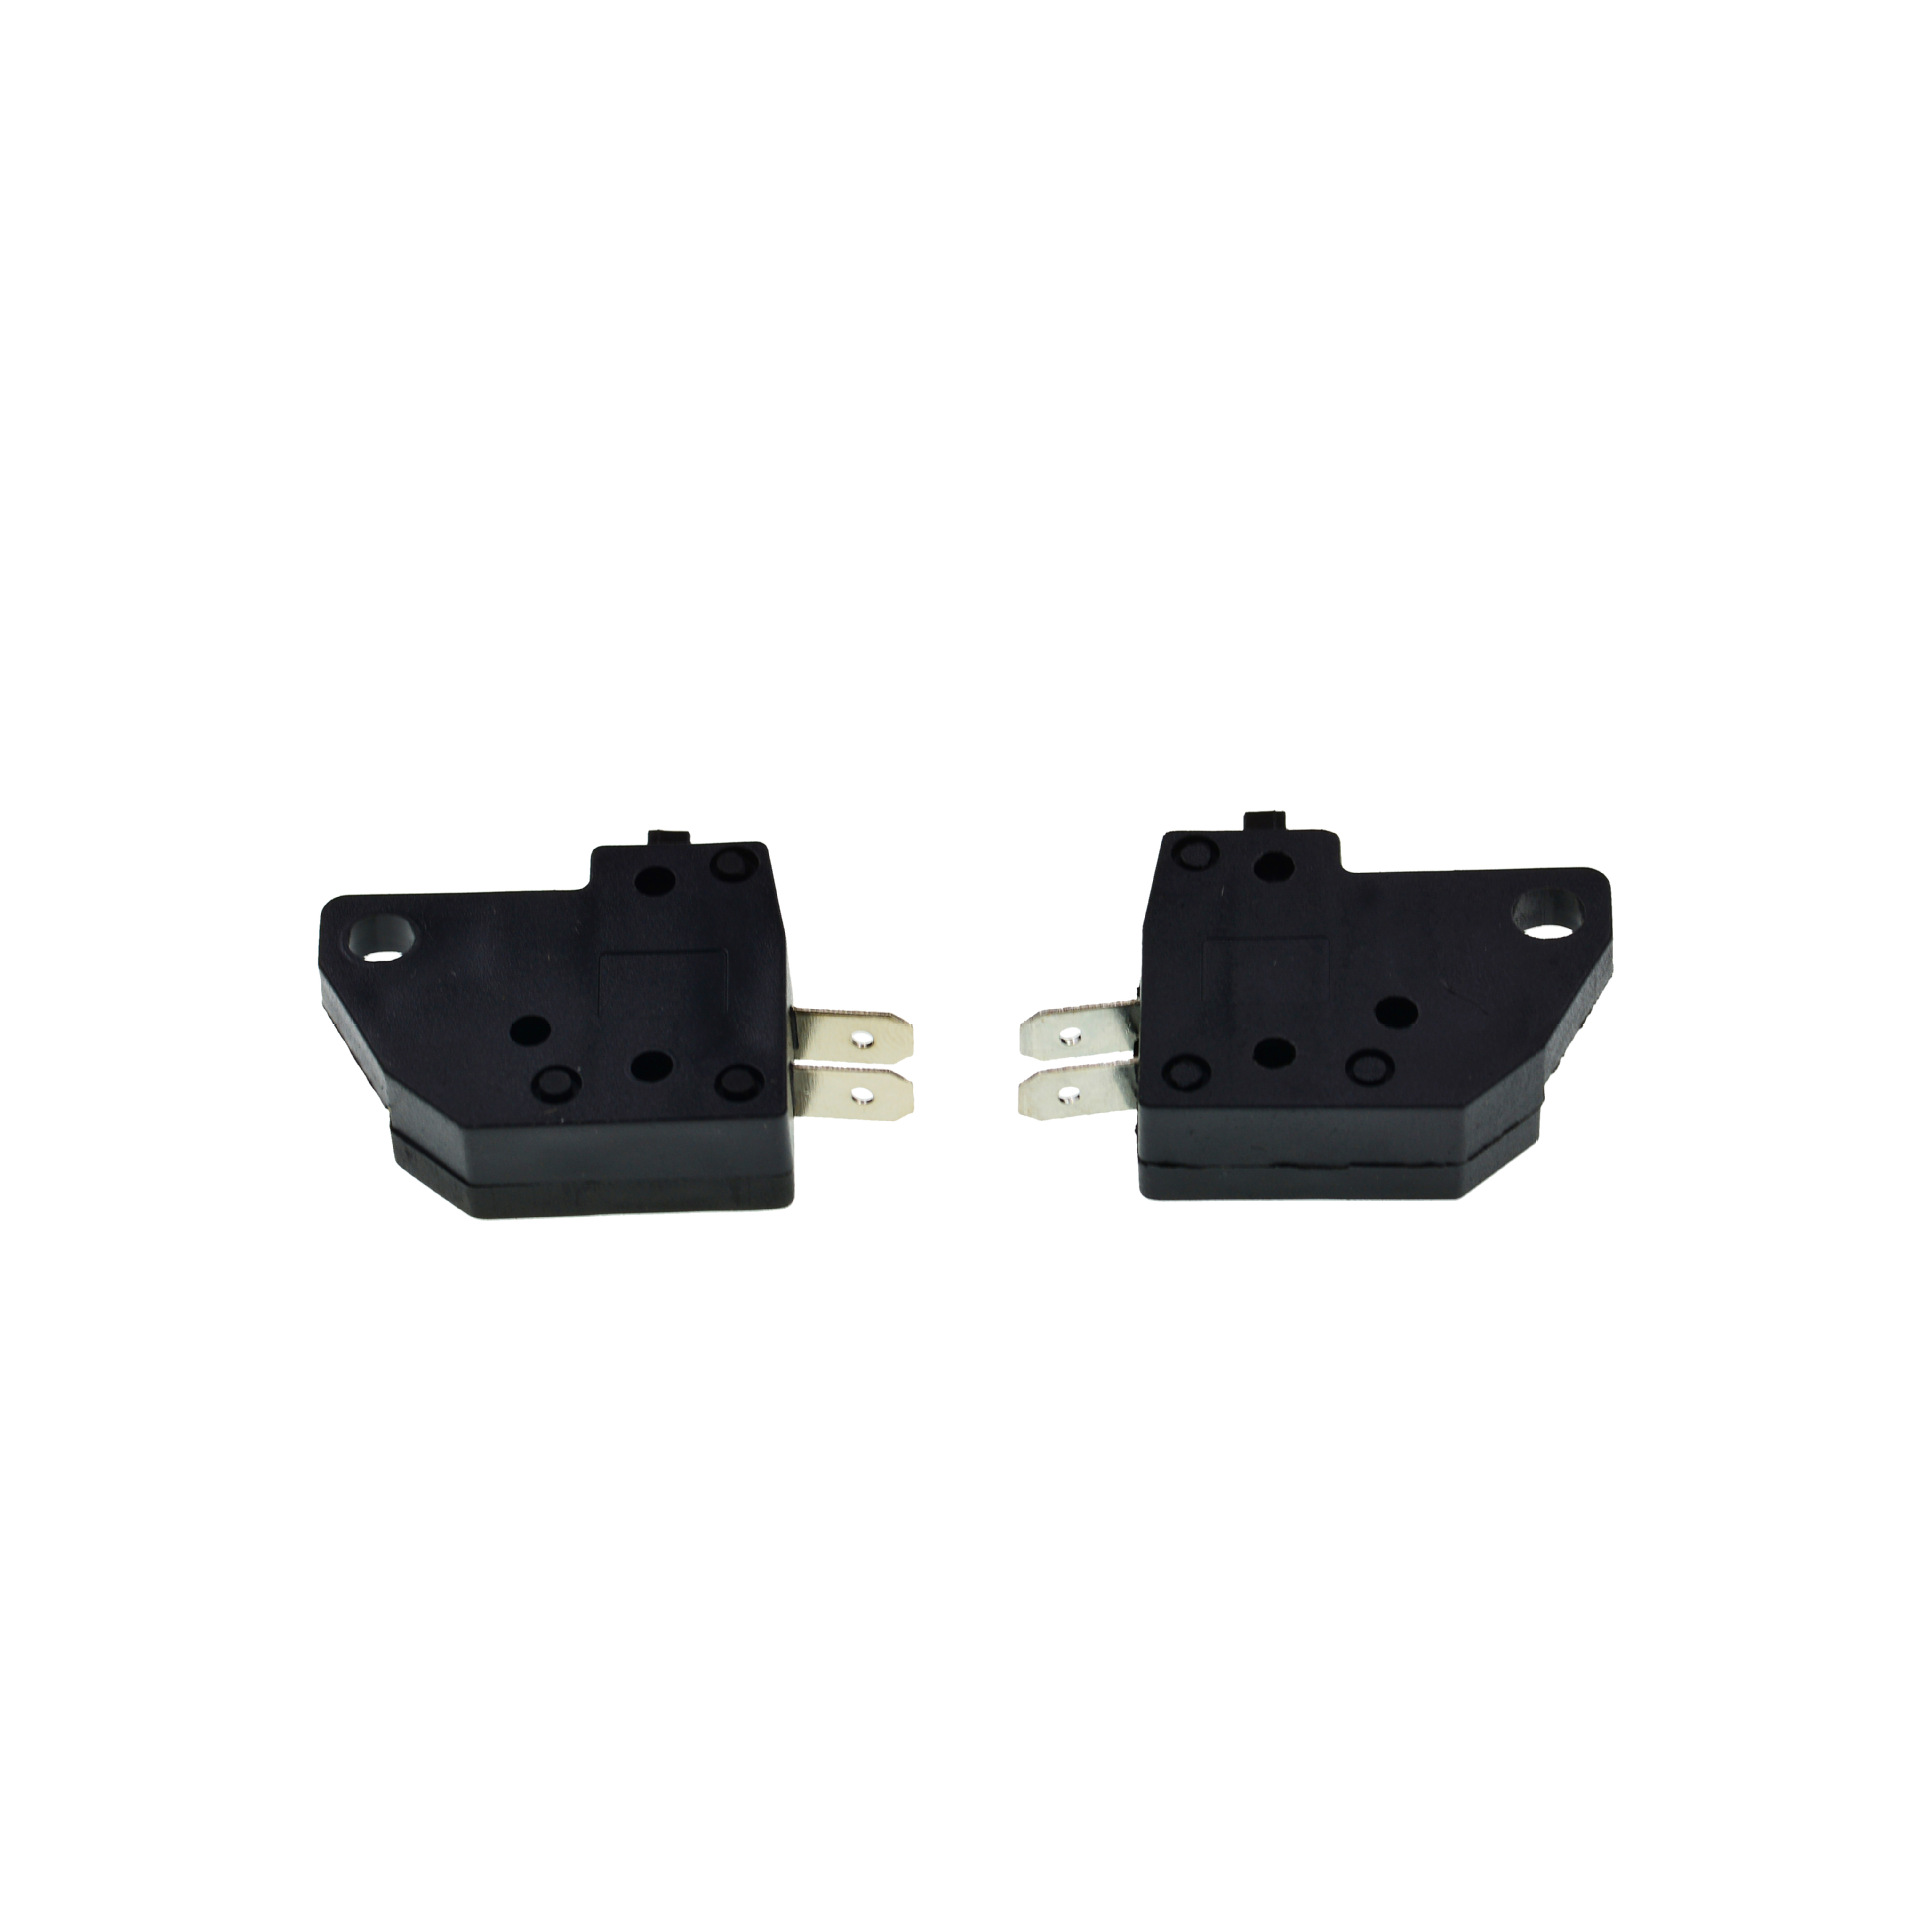 1 Pair Left Right Side Brake Light Switch Motorcycle Cylinder Level Mount Scooter ATV Moped Hydraulic Brake Handle Button